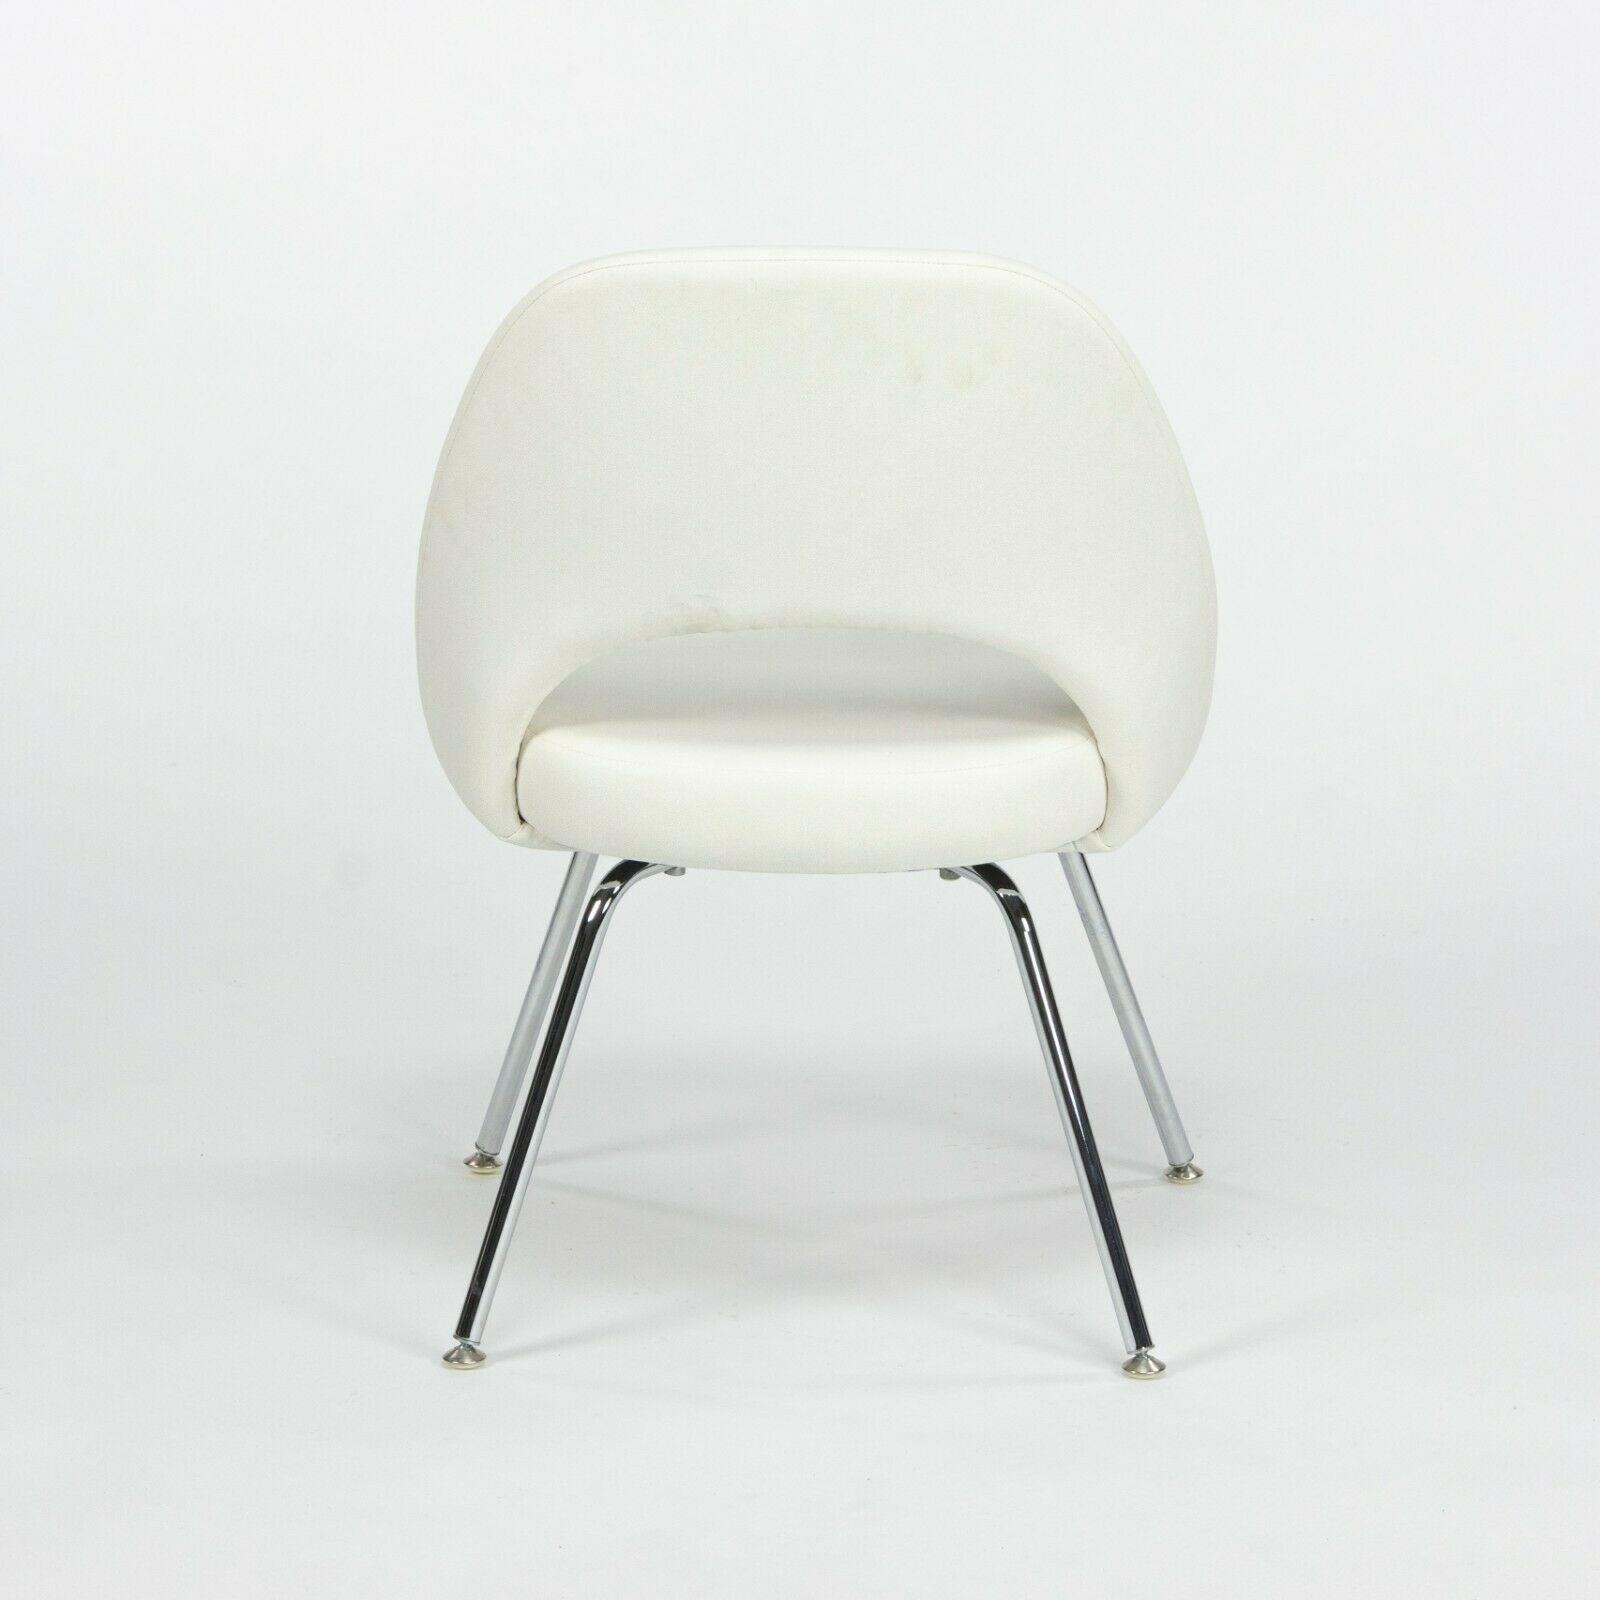 Eero Saarinen Knoll 2020 White Leather Executive Side Chair with Chrome Legs 2x Available